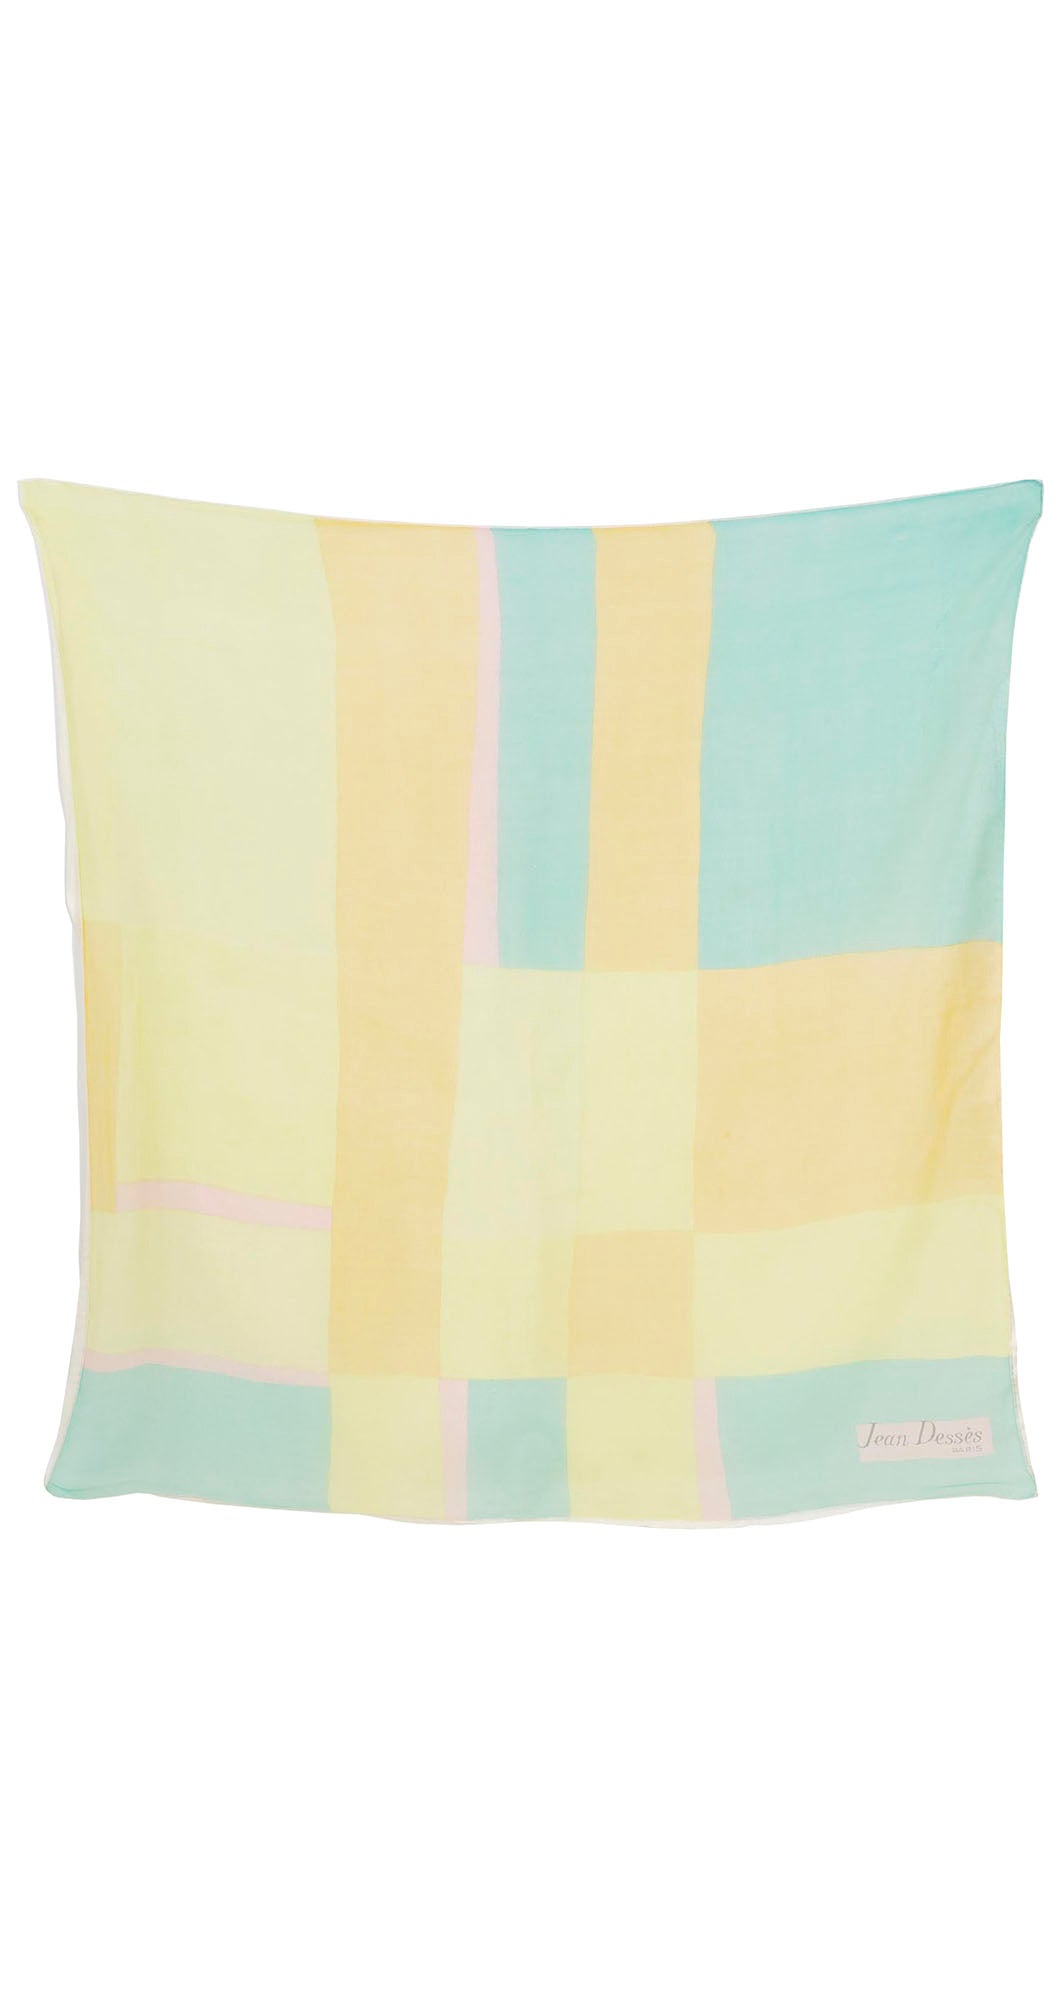 1960s Mod Pastel Silk Double Layer Scarf